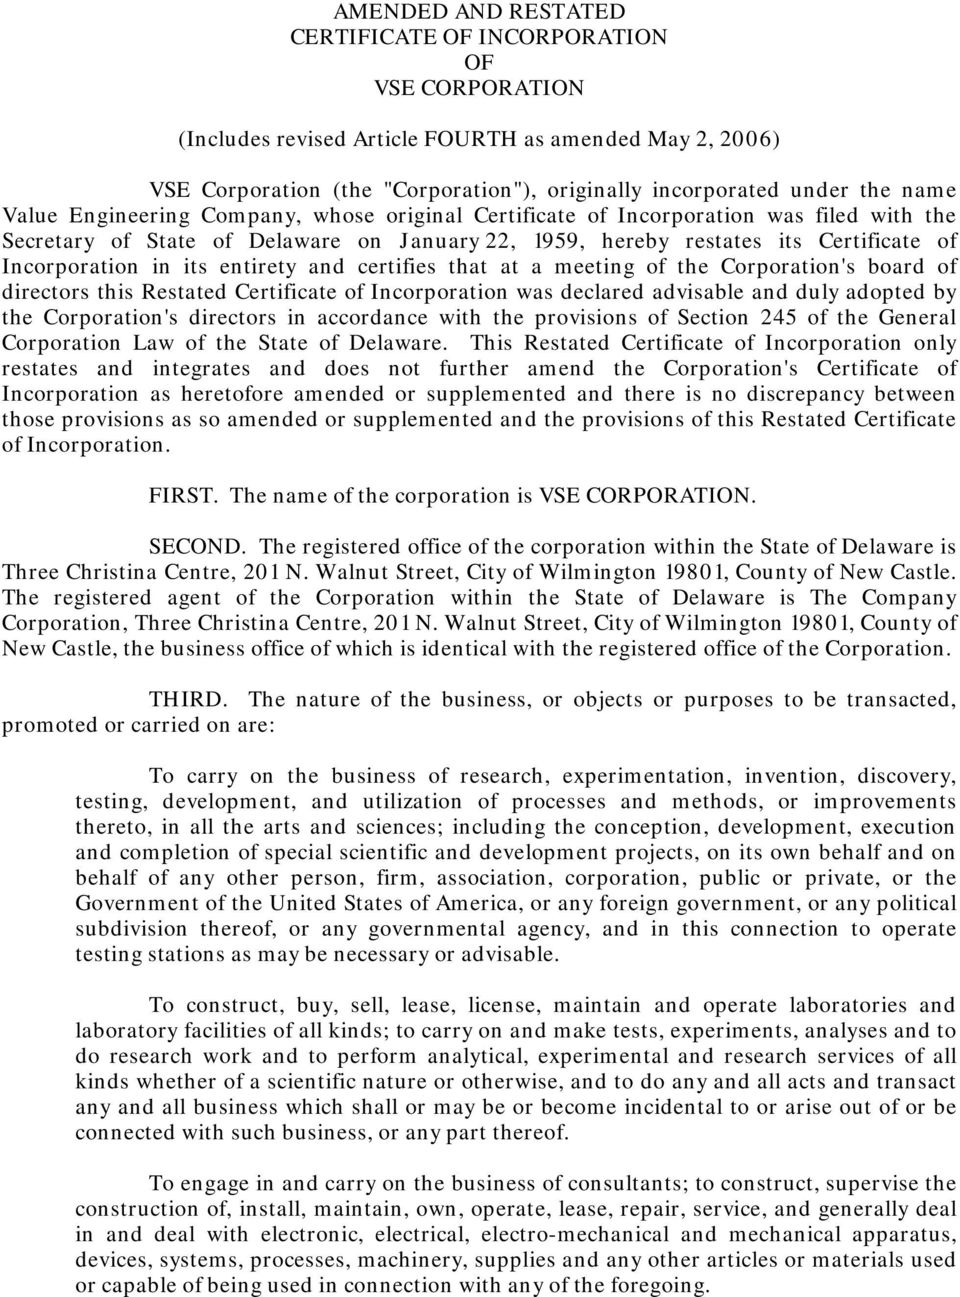 entirety and certifies that at a meeting of the Corporation's board of directors this Restated Certificate of Incorporation was declared advisable and duly adopted by the Corporation's directors in